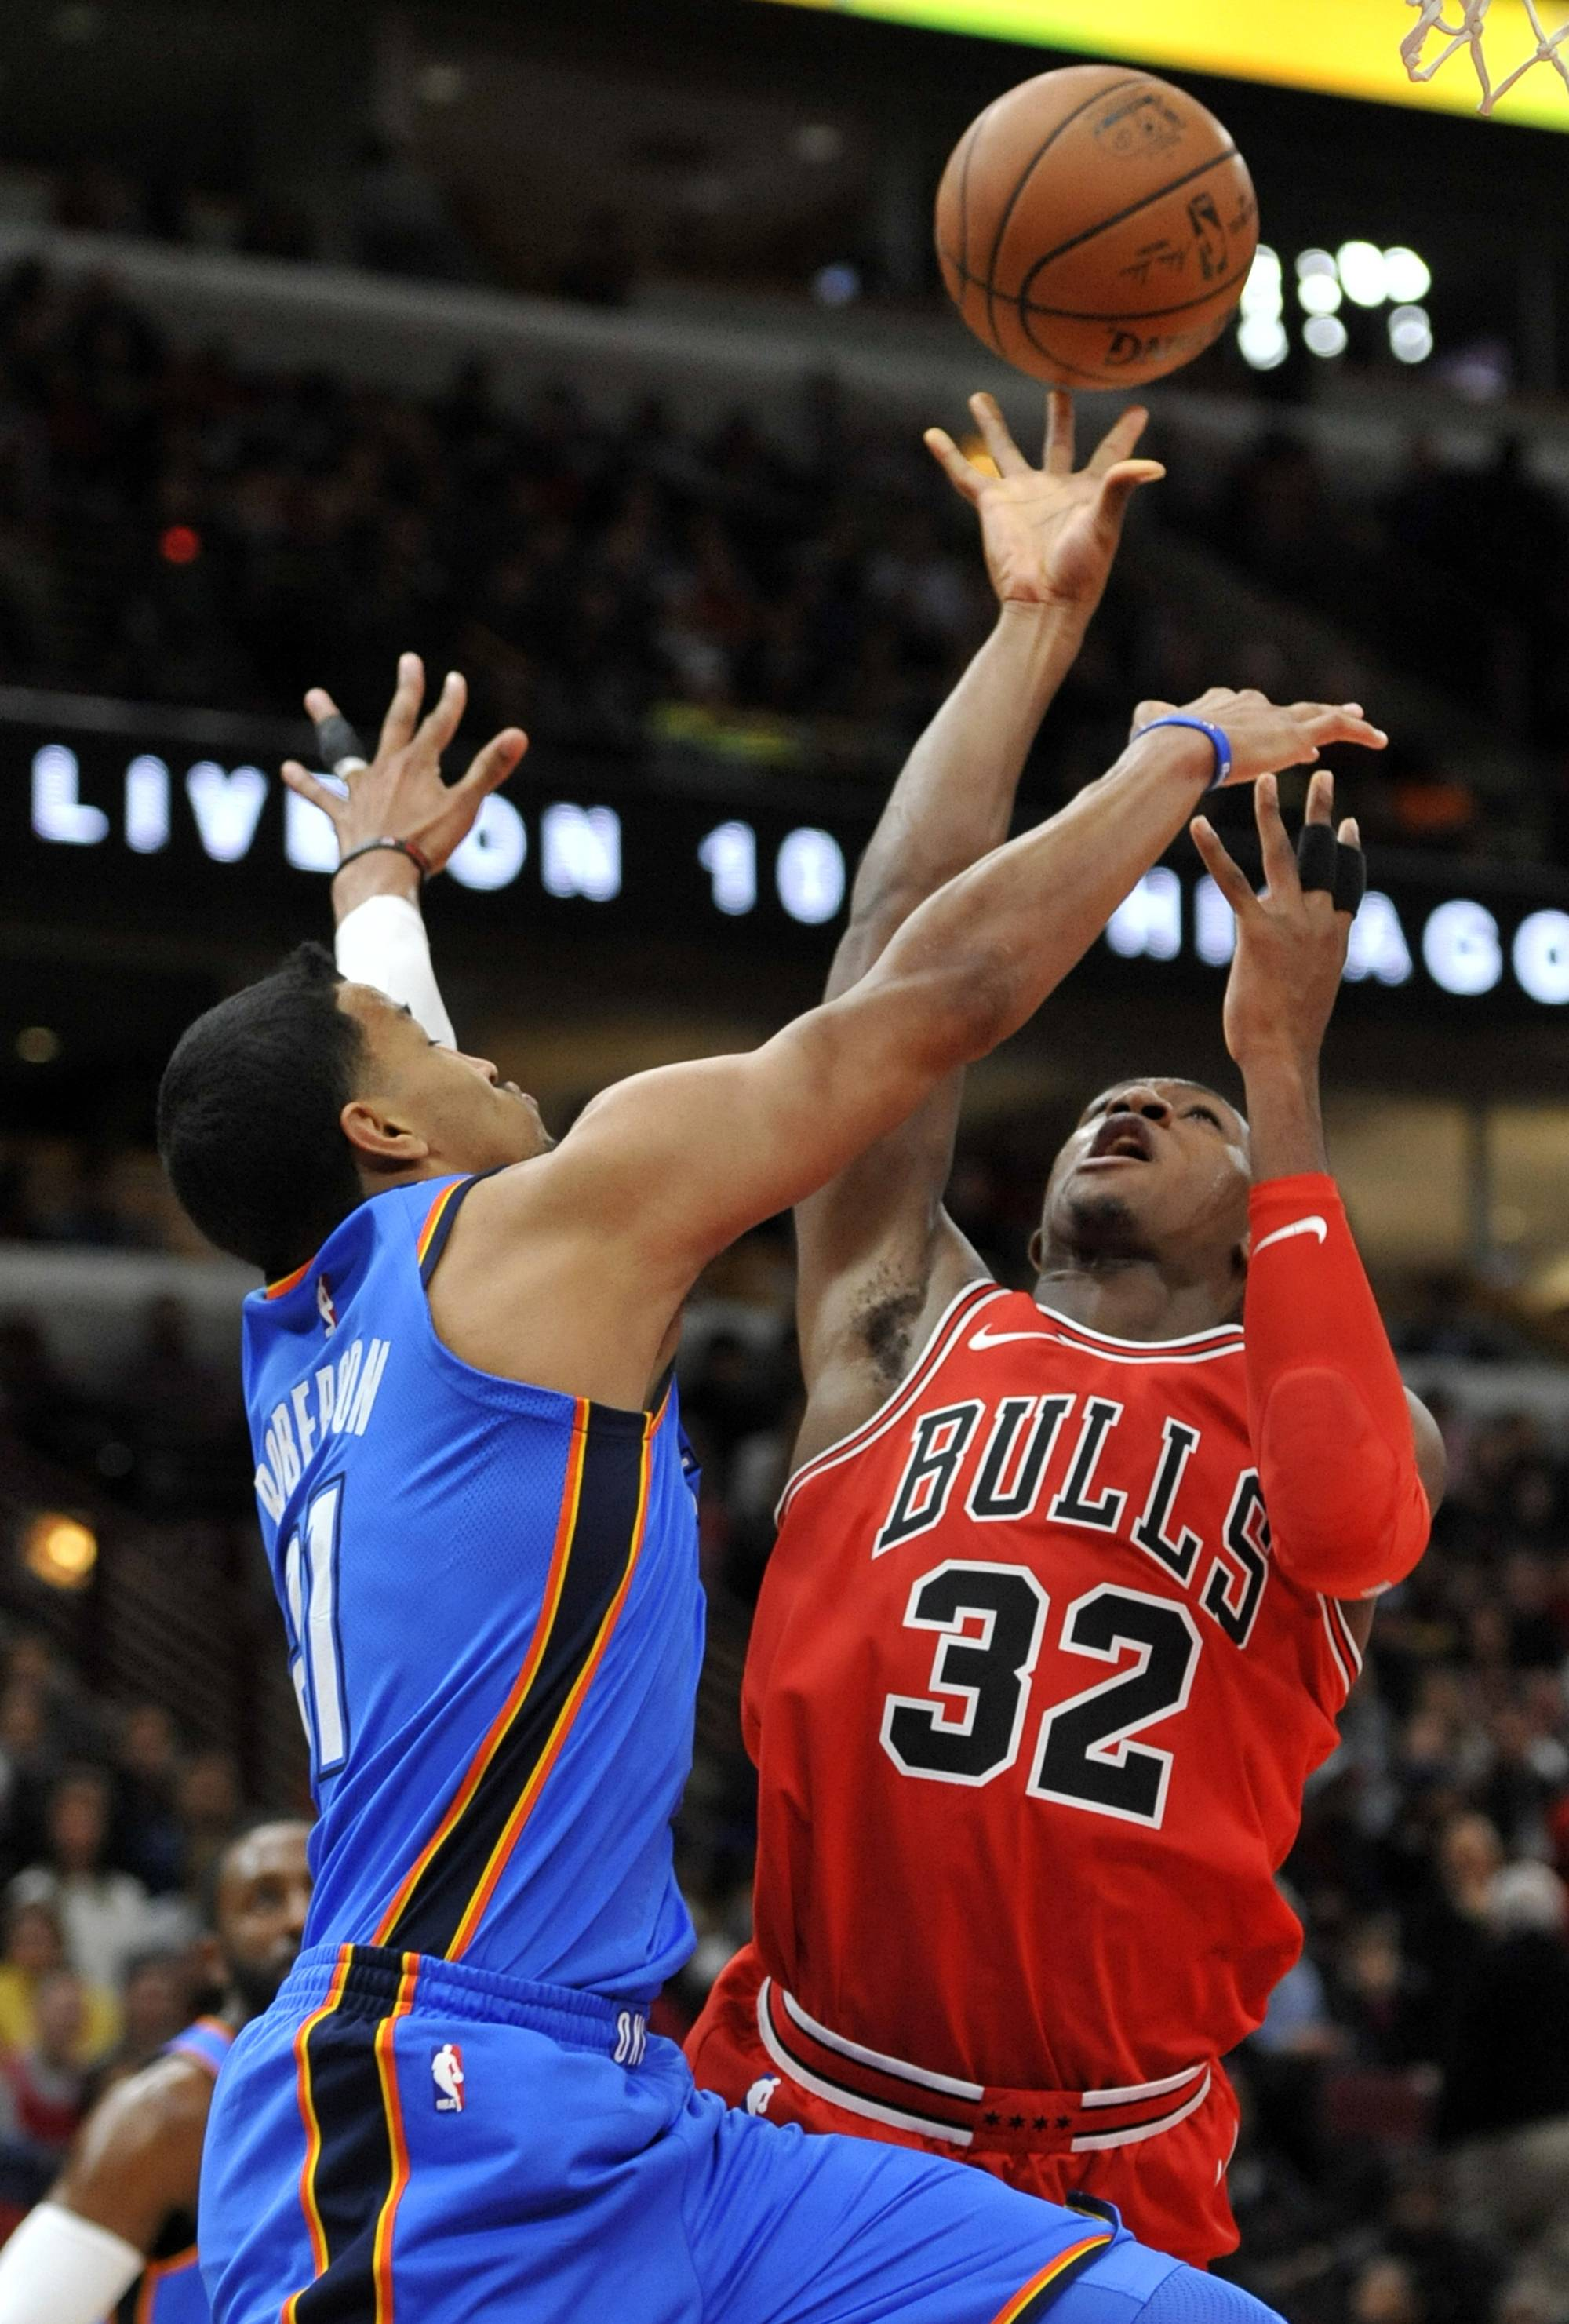 Dunn ready to take advantage of Bulls' open competition